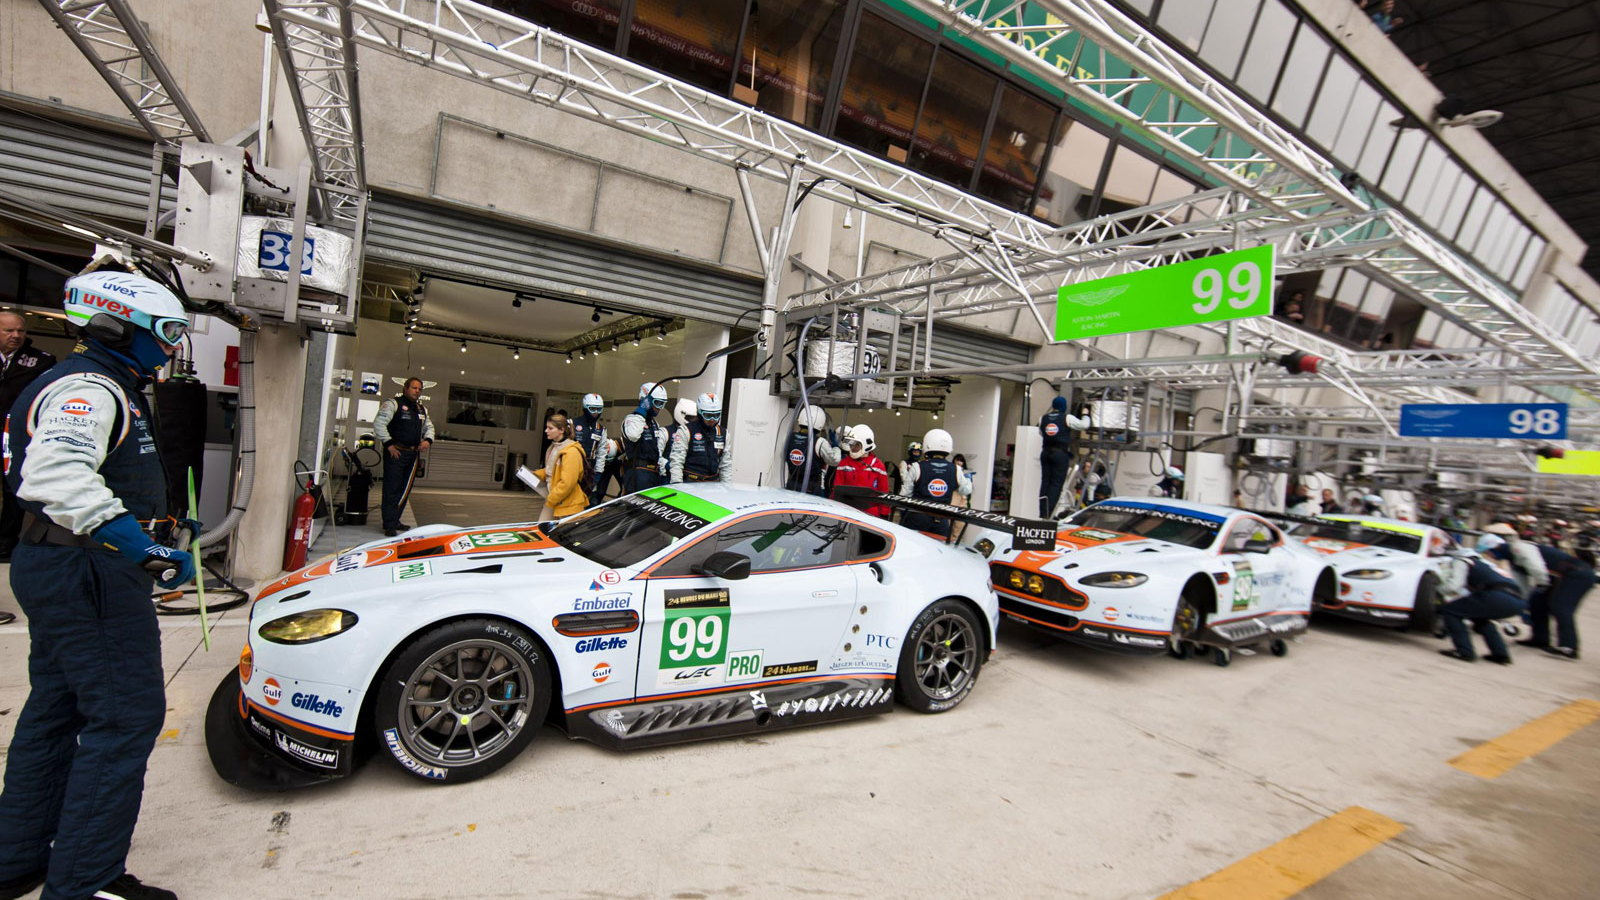 Aston Martin during official testing for 2013's 24 Hours of Le Mans